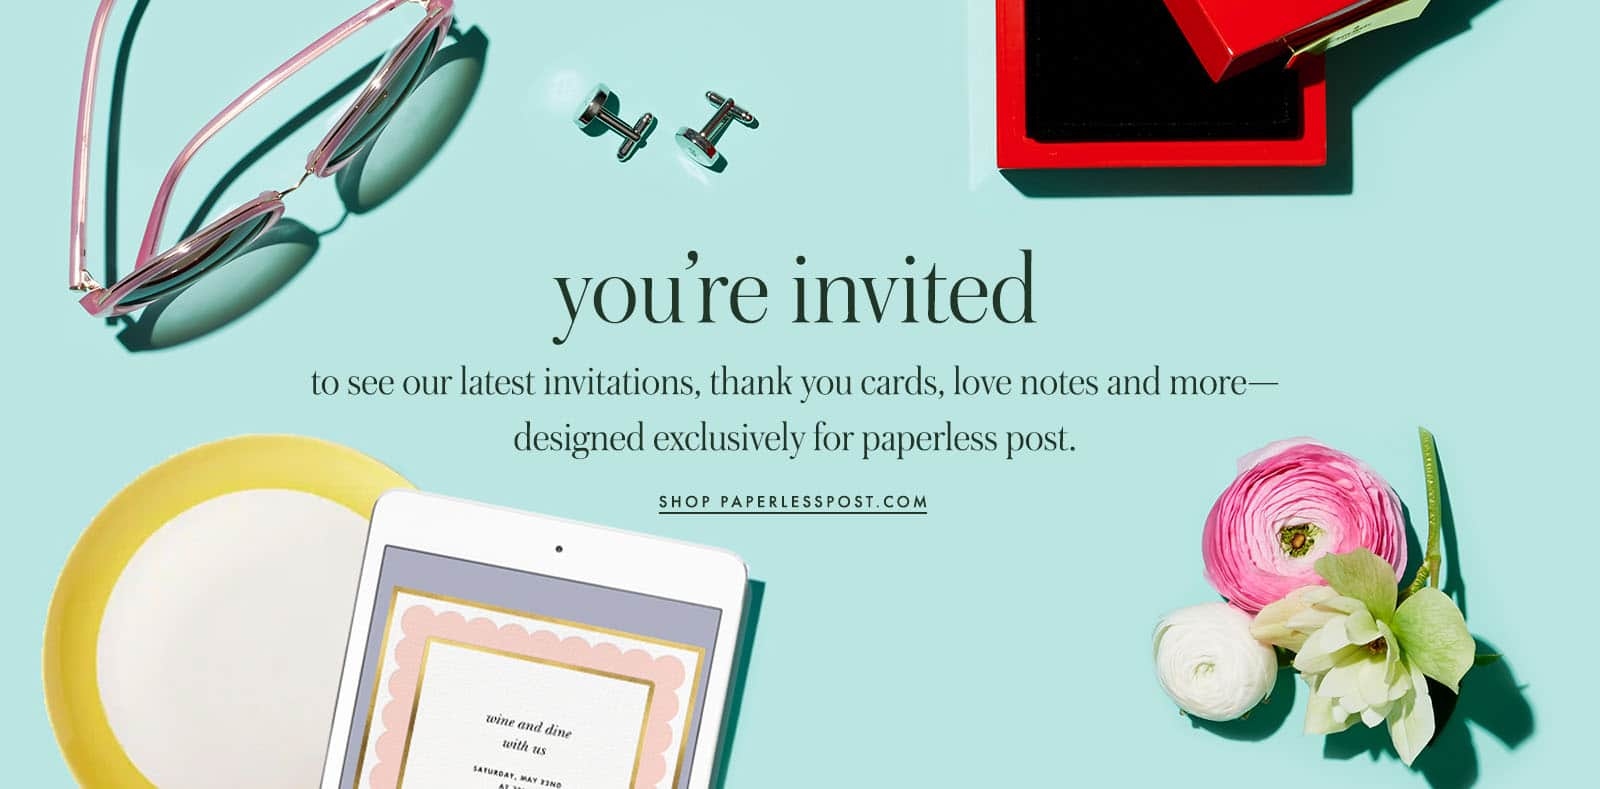 you're invited to see our latest invitations, thank you cards, love notes and more--designed exclusively for paperless post. shop paperlesspost.com. border=